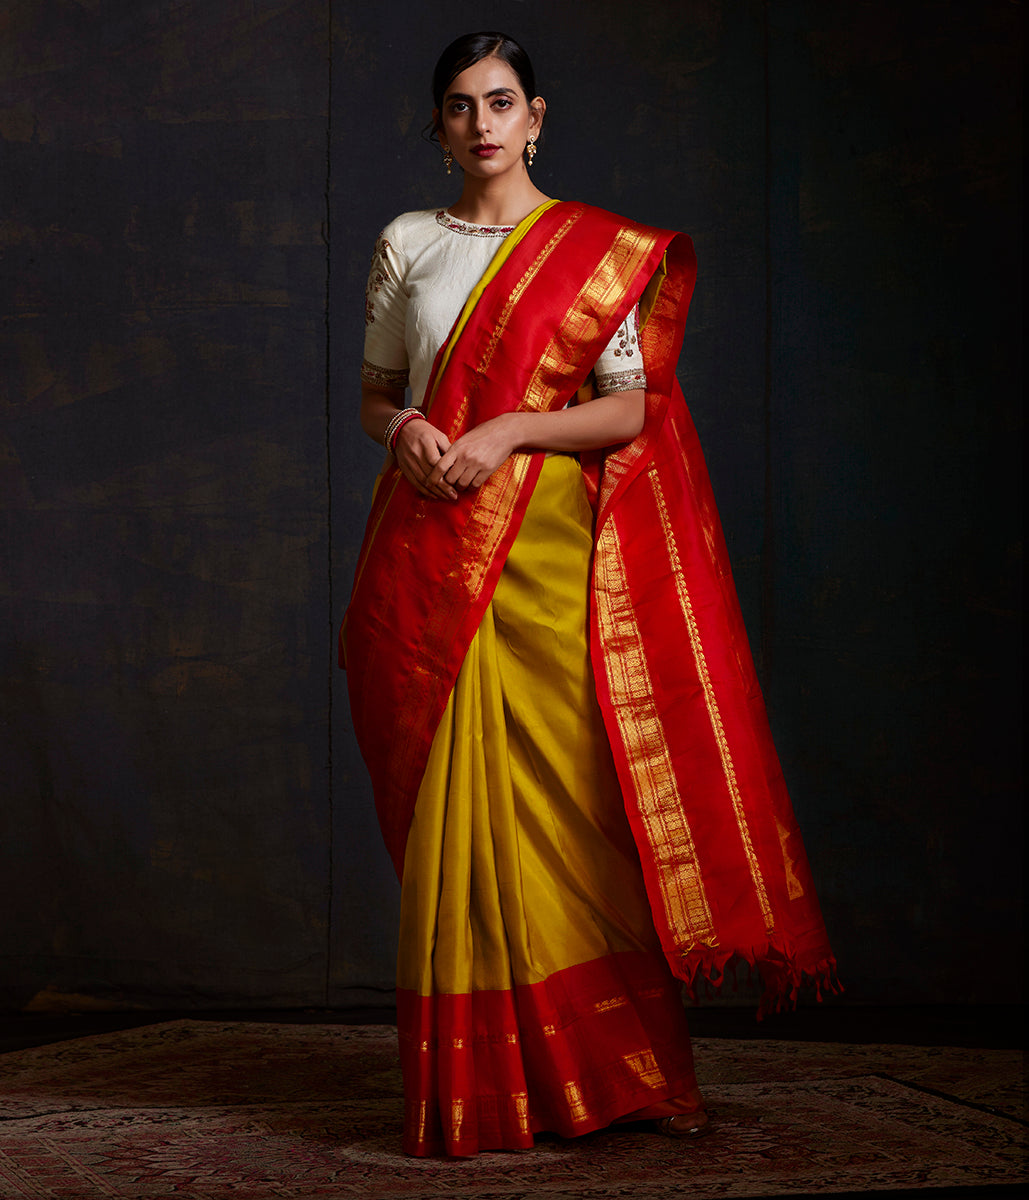 Handwoven Green Kanjivaram Saree with Contrast Red Border